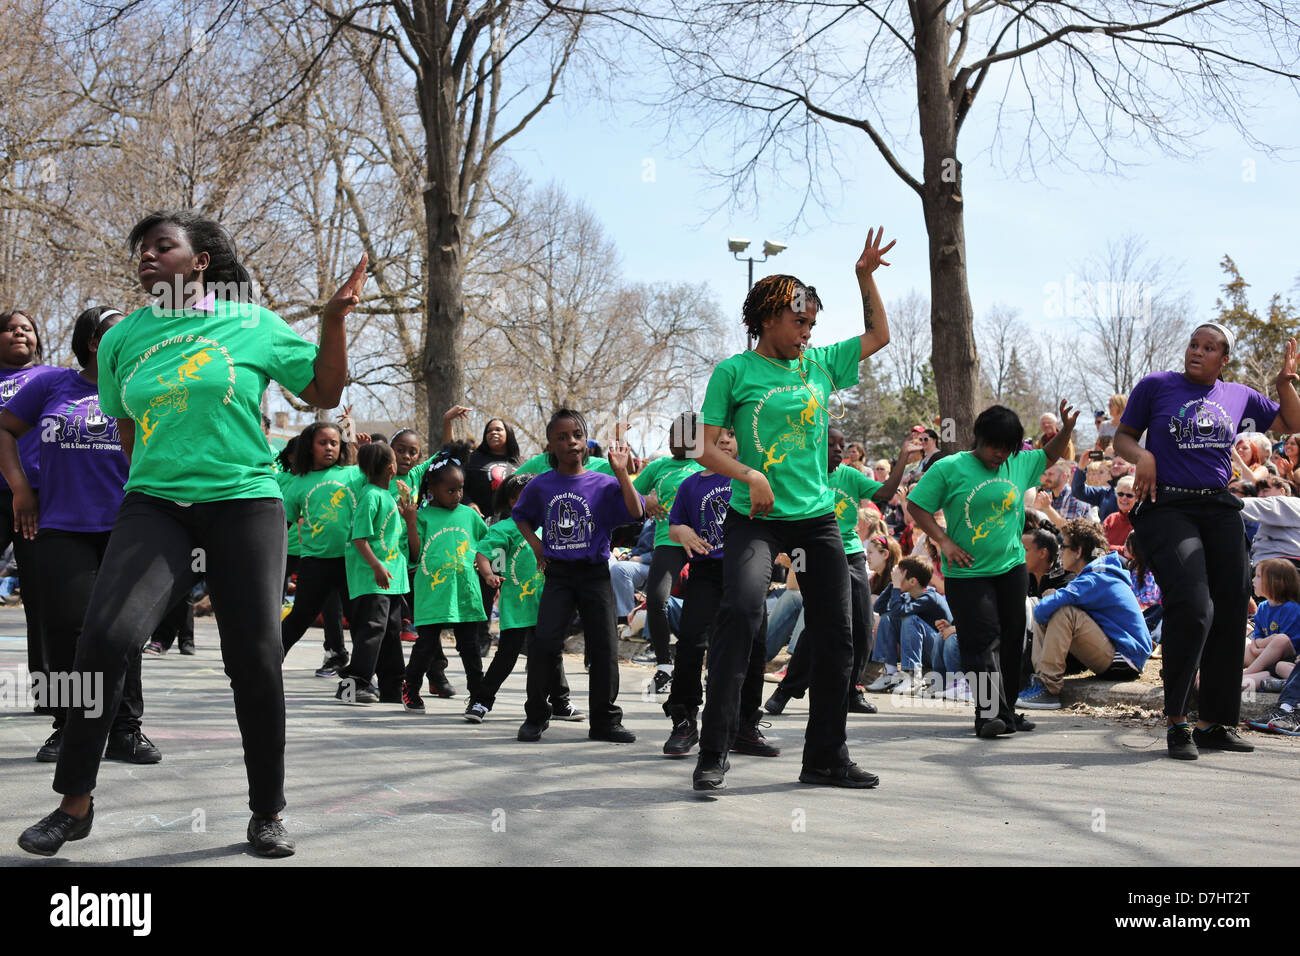 A troupe of young African American dancers dancing at the May Day parade in Minneapolis, Minnesota. - Stock Image